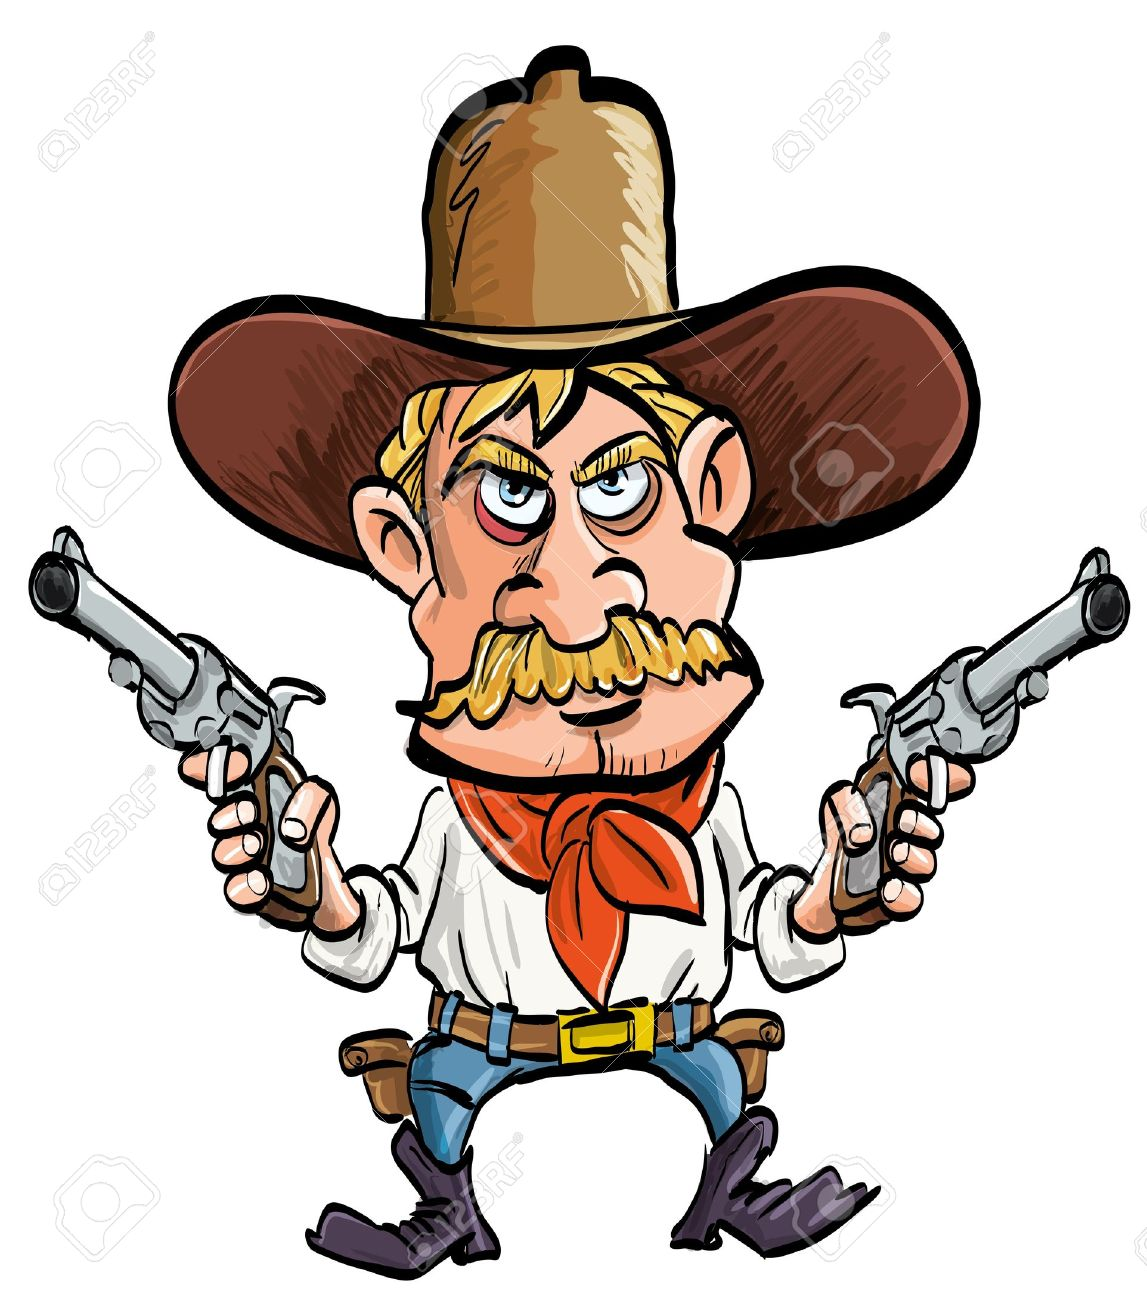 Cartoon Cowboy With His Guns Drawn Isolated On White Royalty Free Cliparts Vectors And Stock Illustration Image 14227550